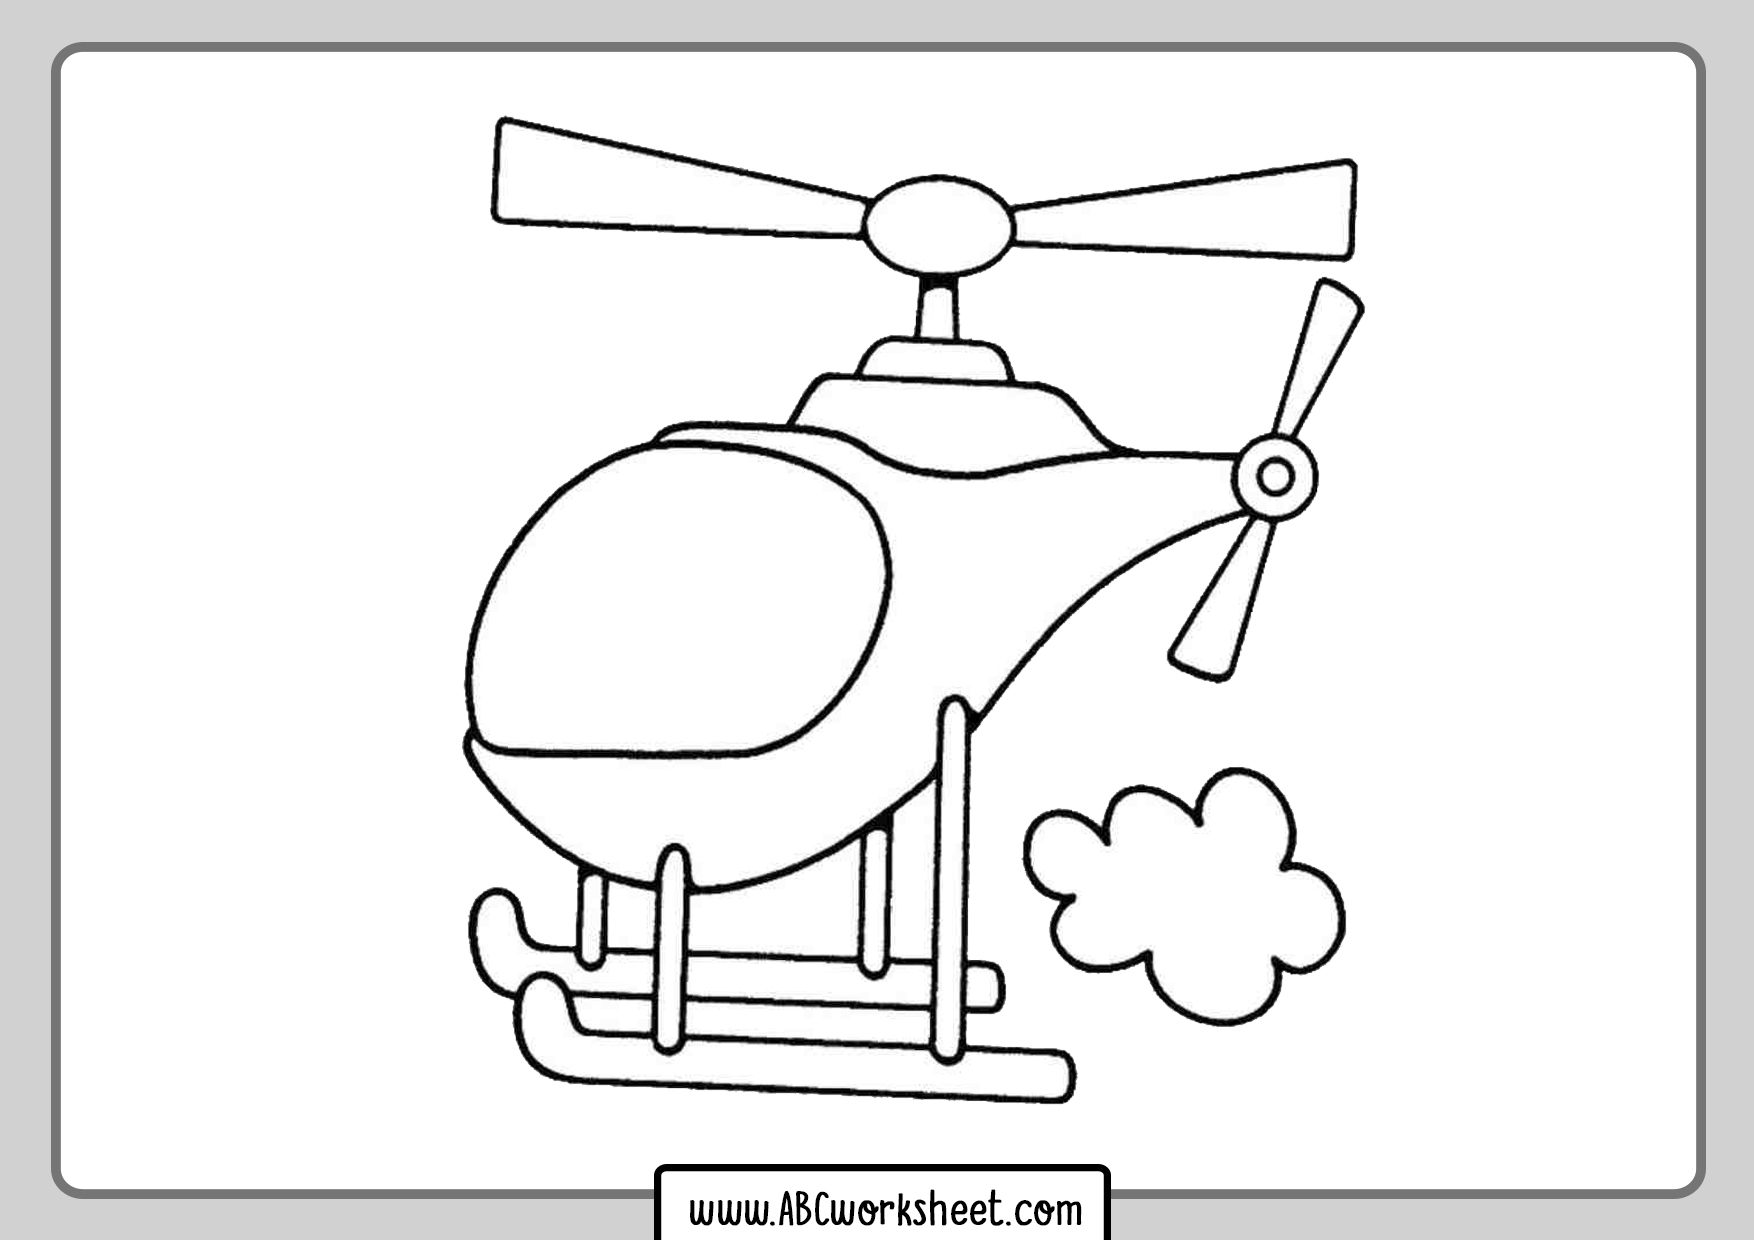 Helicopter Coloring Pages For Toddlers